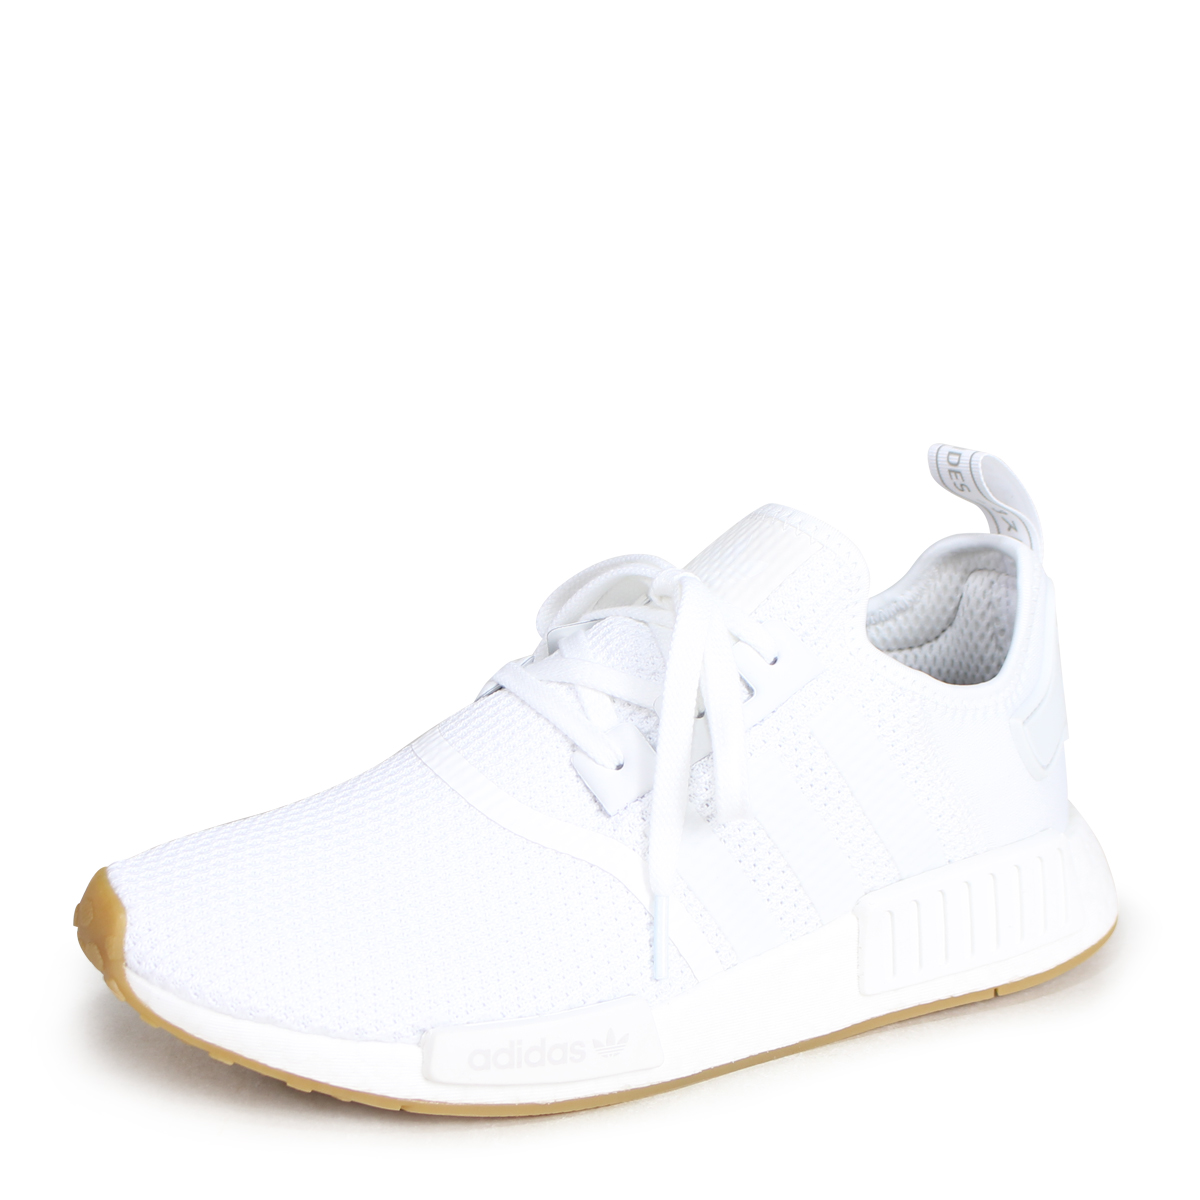 adidas originals NMD R1 Adidas originals sneakers N M D nomad men D96635 white [load planned Shinnyu load in reservation product 77 containing] [187]